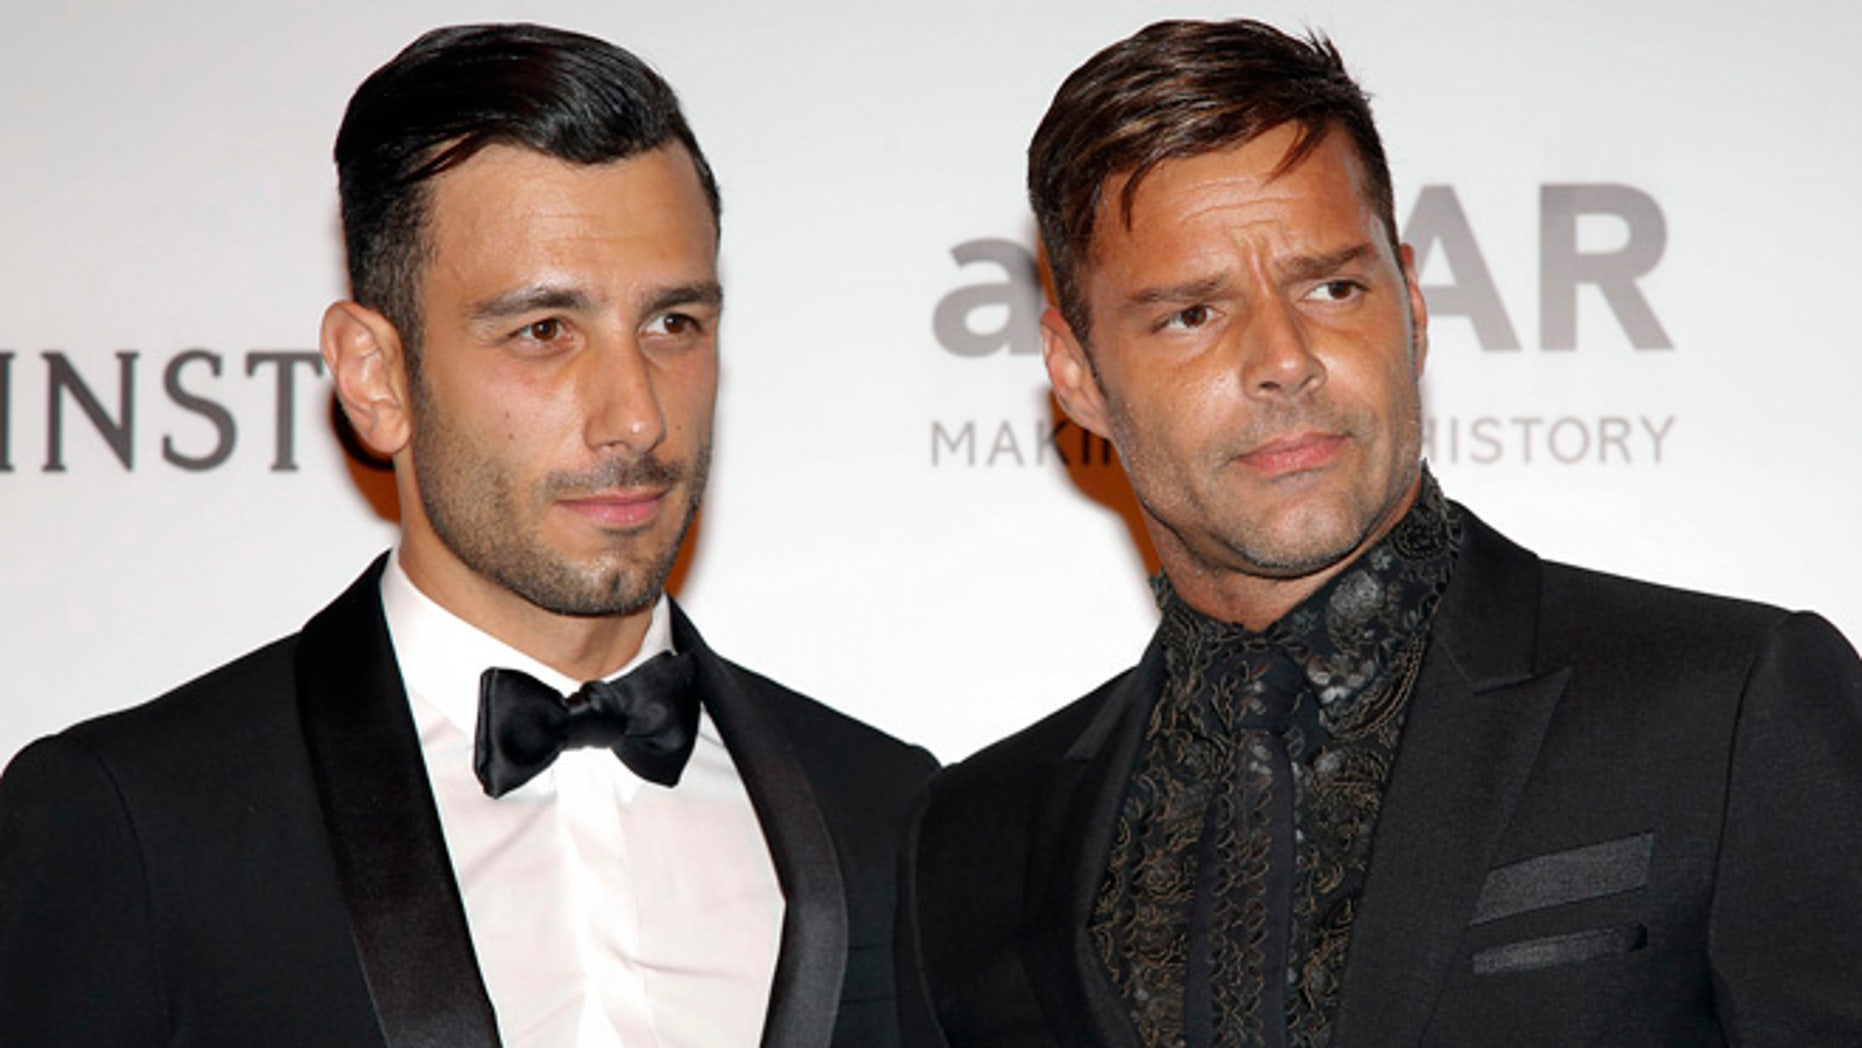 Singer Ricky Martin, right, and artist Jwan Yosef pose on the red carpet of The Foundation for AIDS Research (amfAR) event in Sao Paulo, Brazil, Friday, April 15, 2016. (AP Photo/Andre Penner)